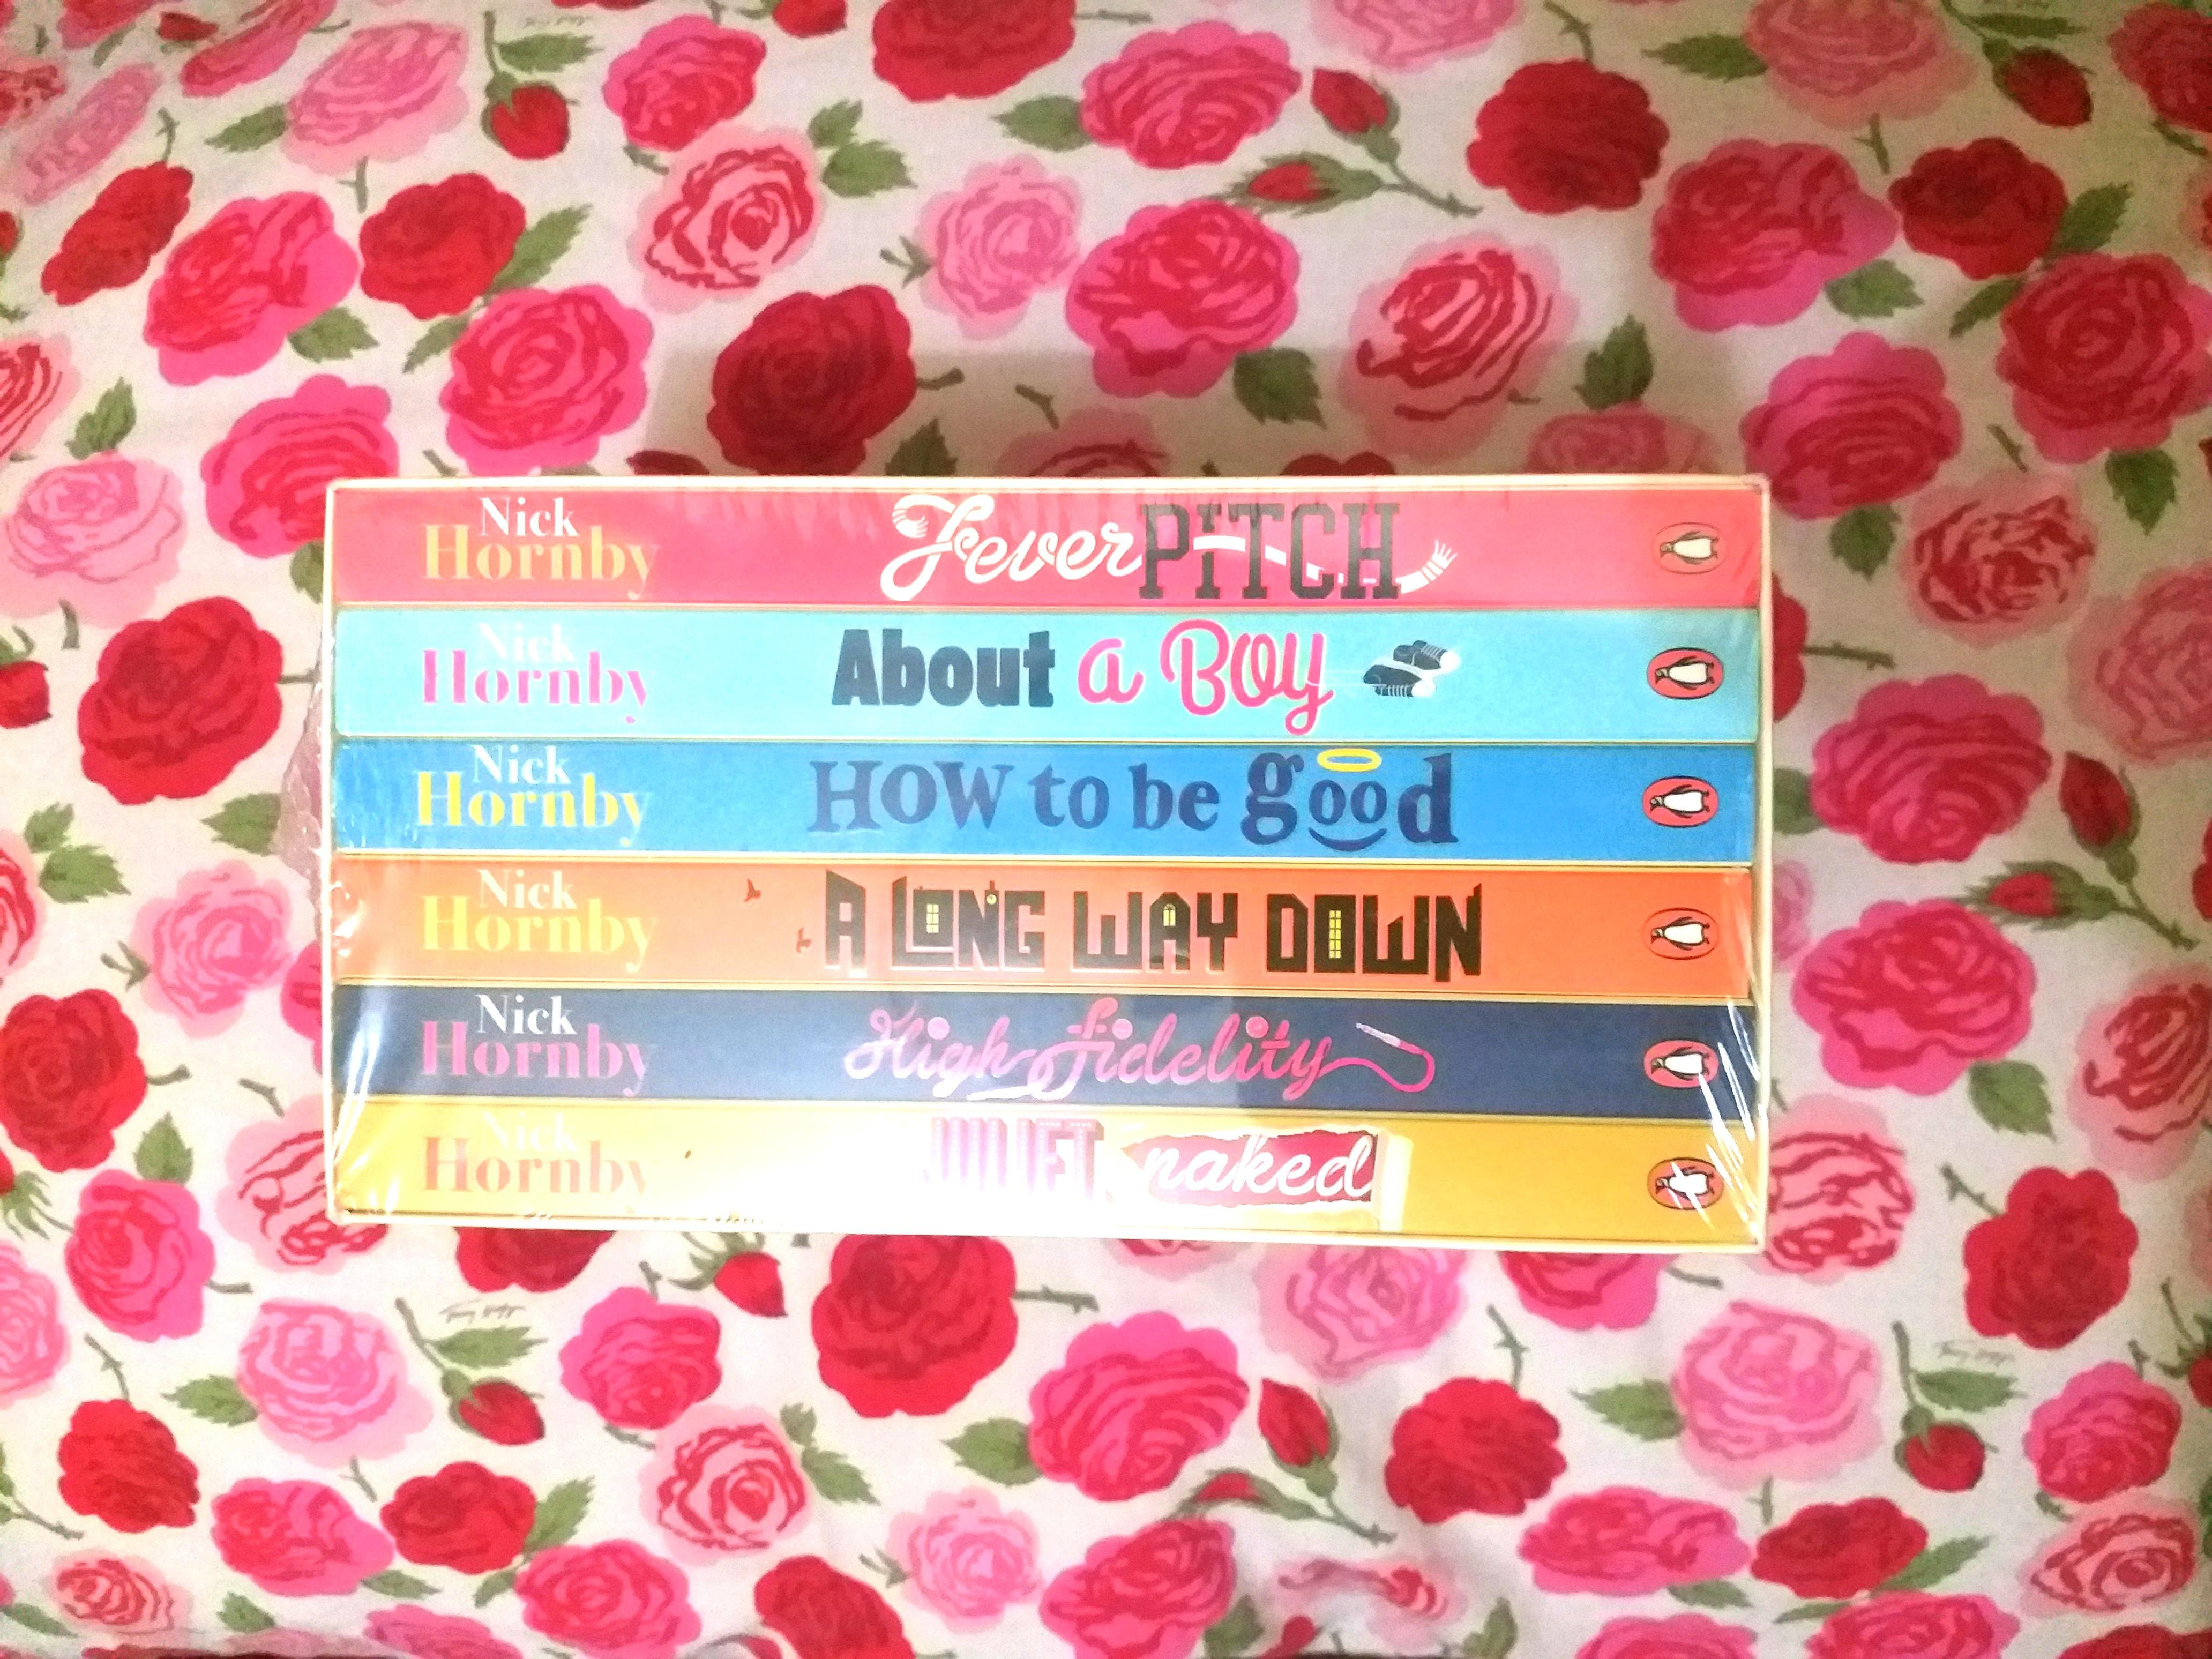 Nick Hornby boxed set